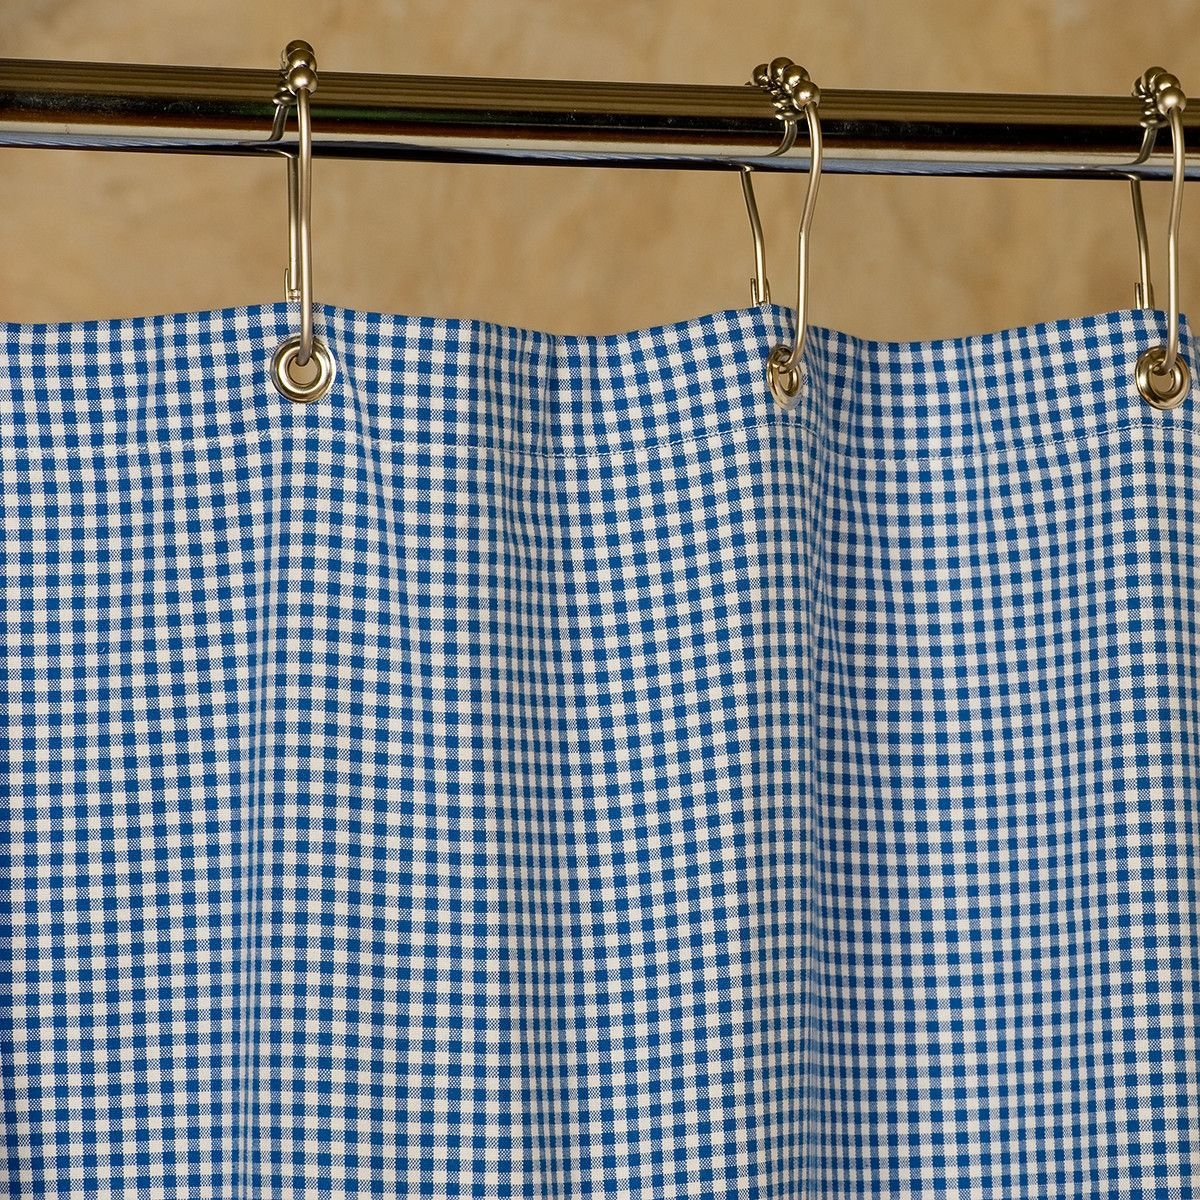 72x72 Standard Size Blue And White Gingham Shower Curtain 12 Grommet Top This